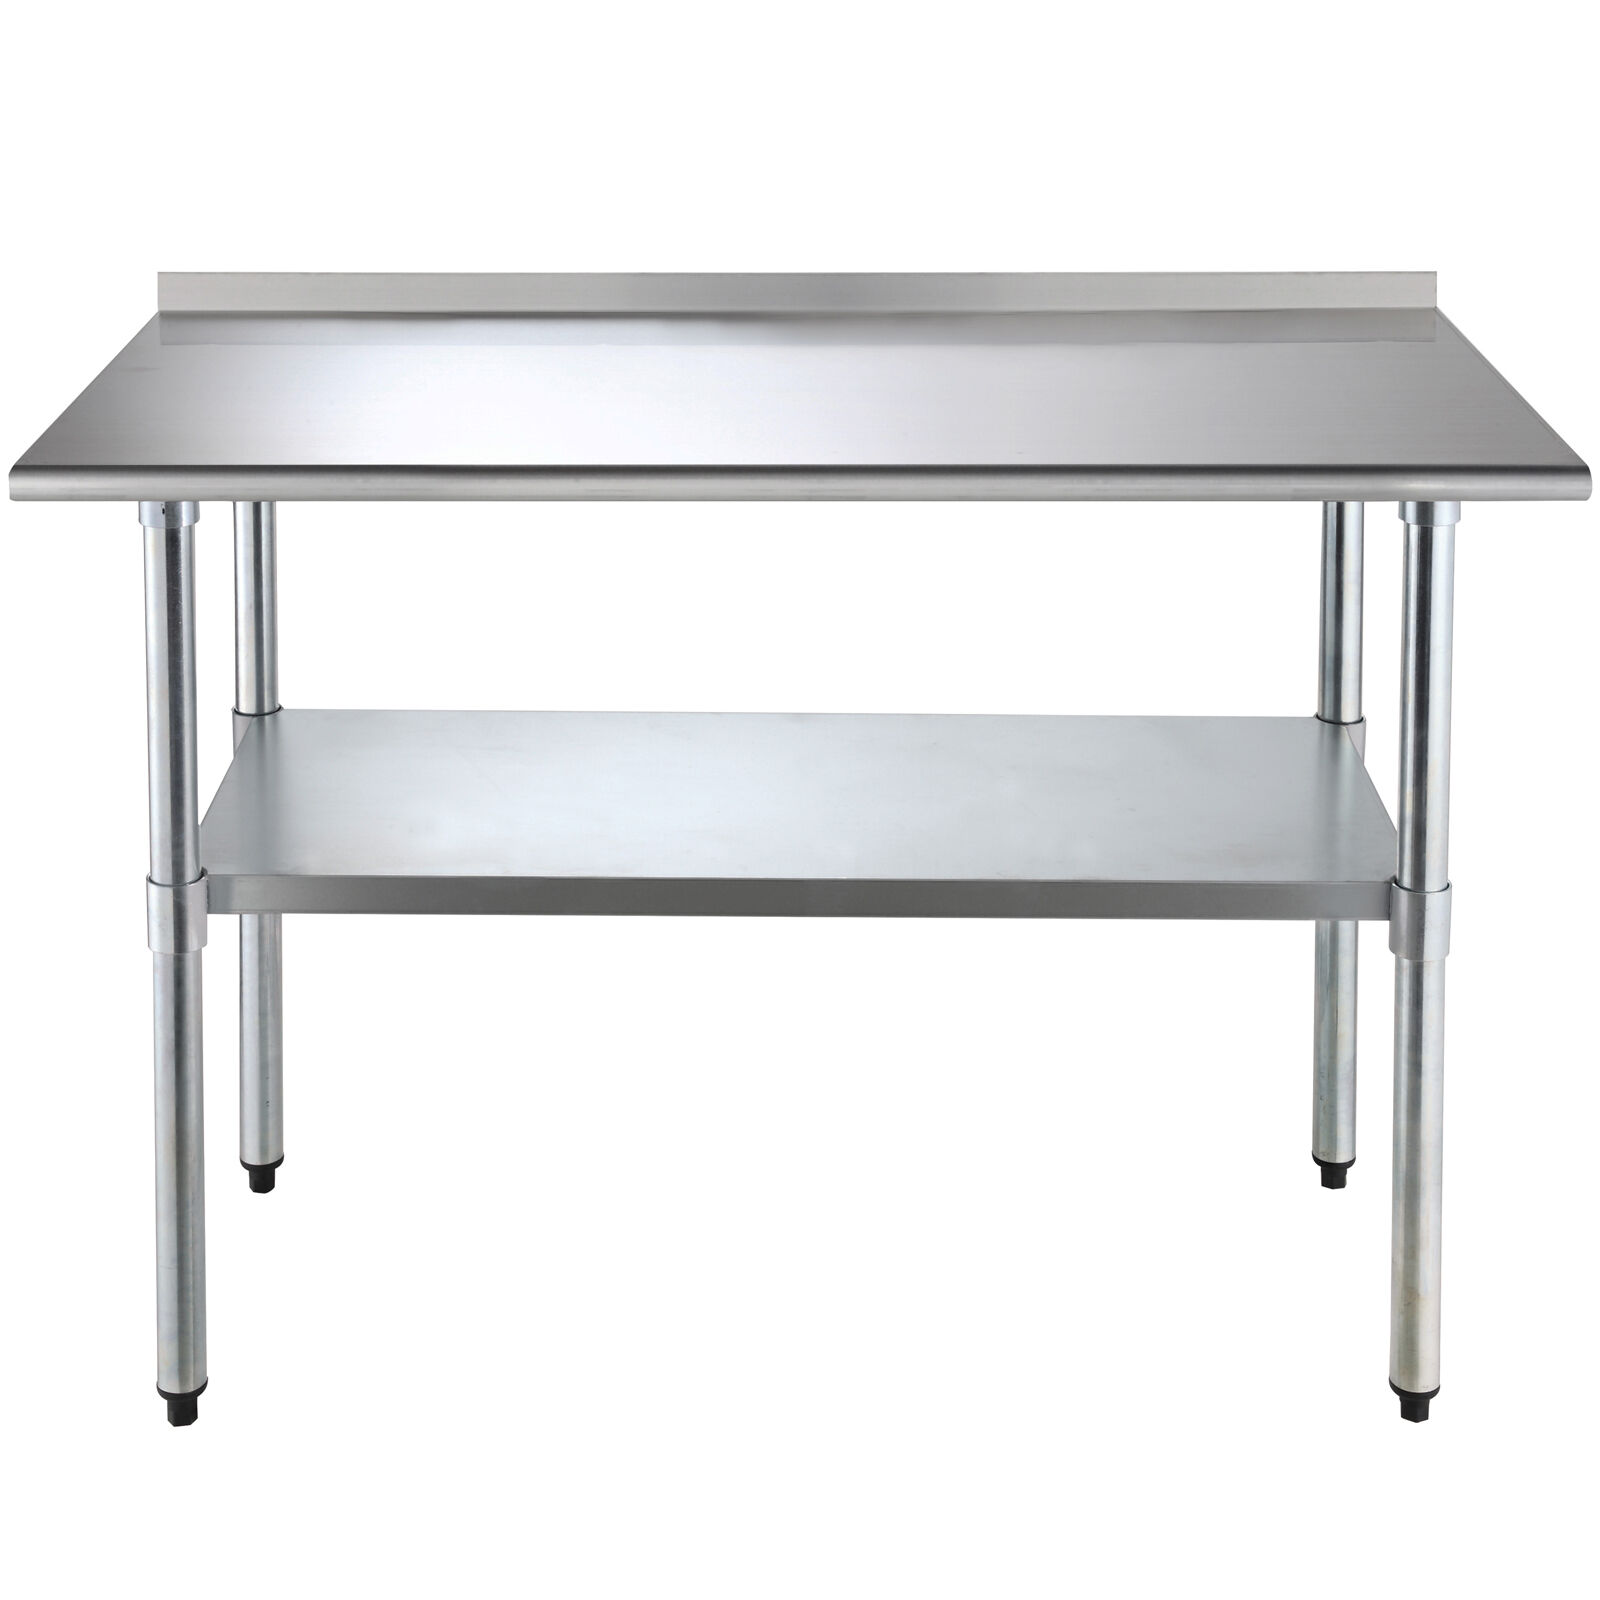 work prep table stainless steel heavy duty commercial home kitchen wbacksplash - Kitchen Prep Table Stainless Steel